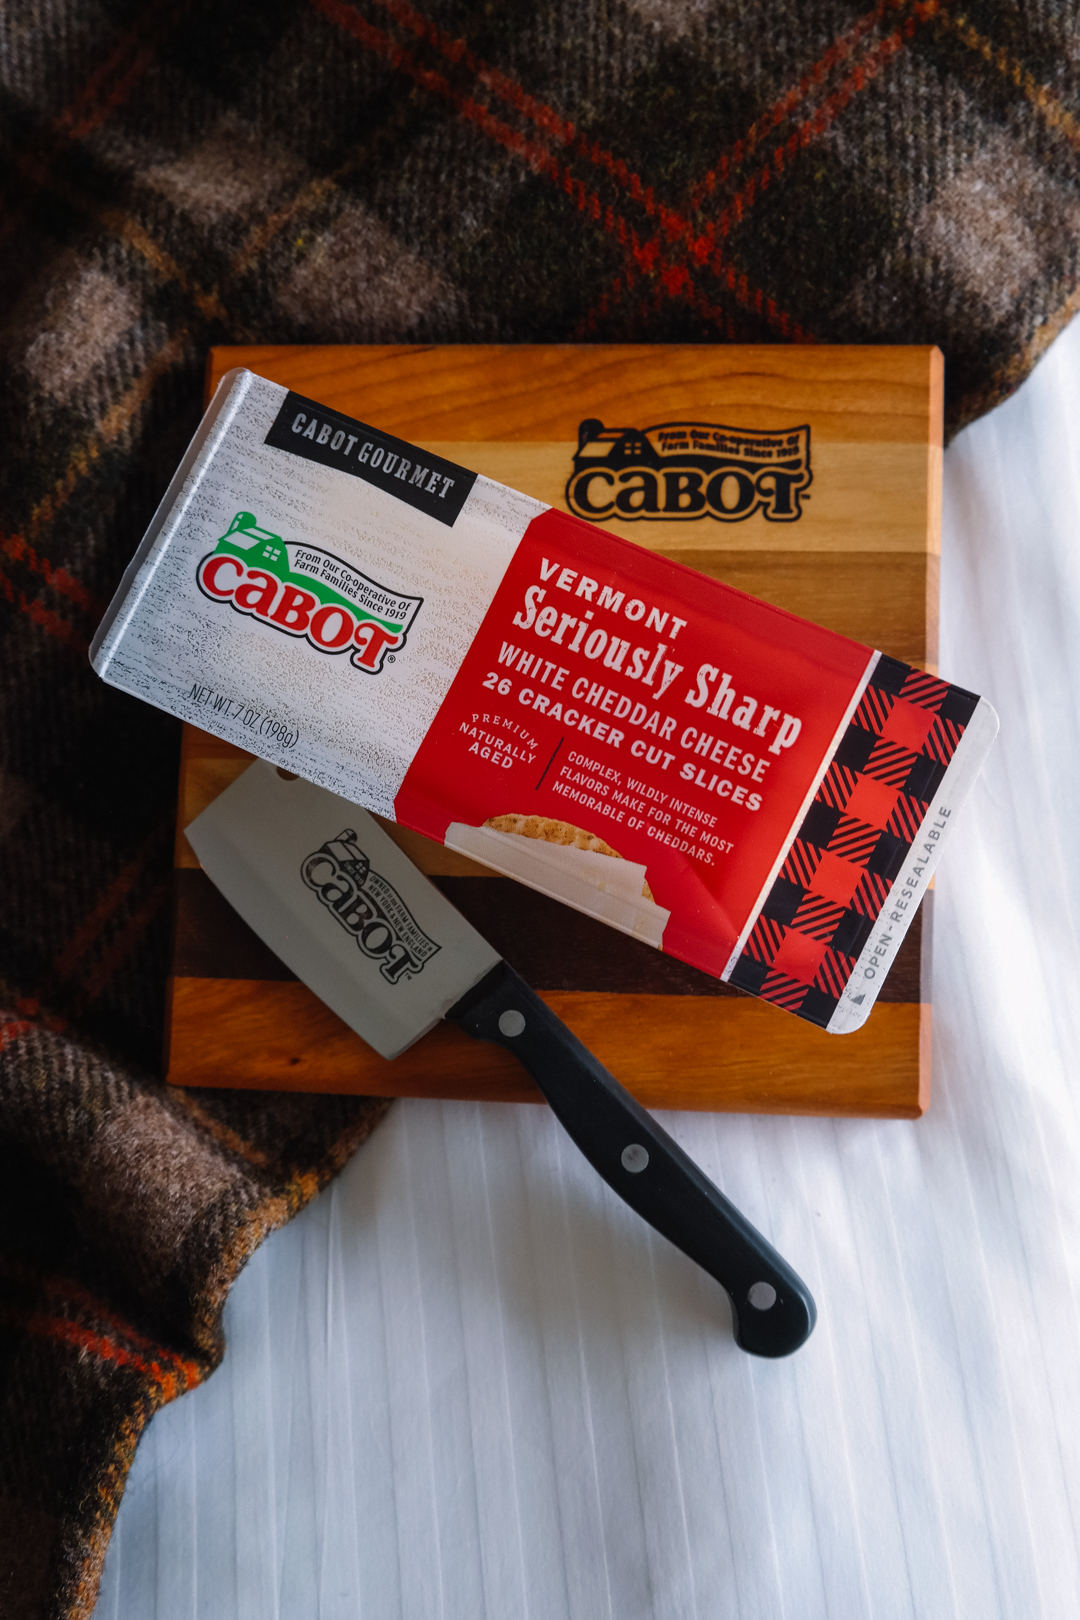 Cabot cheese - seriously sharp cheddar cheese